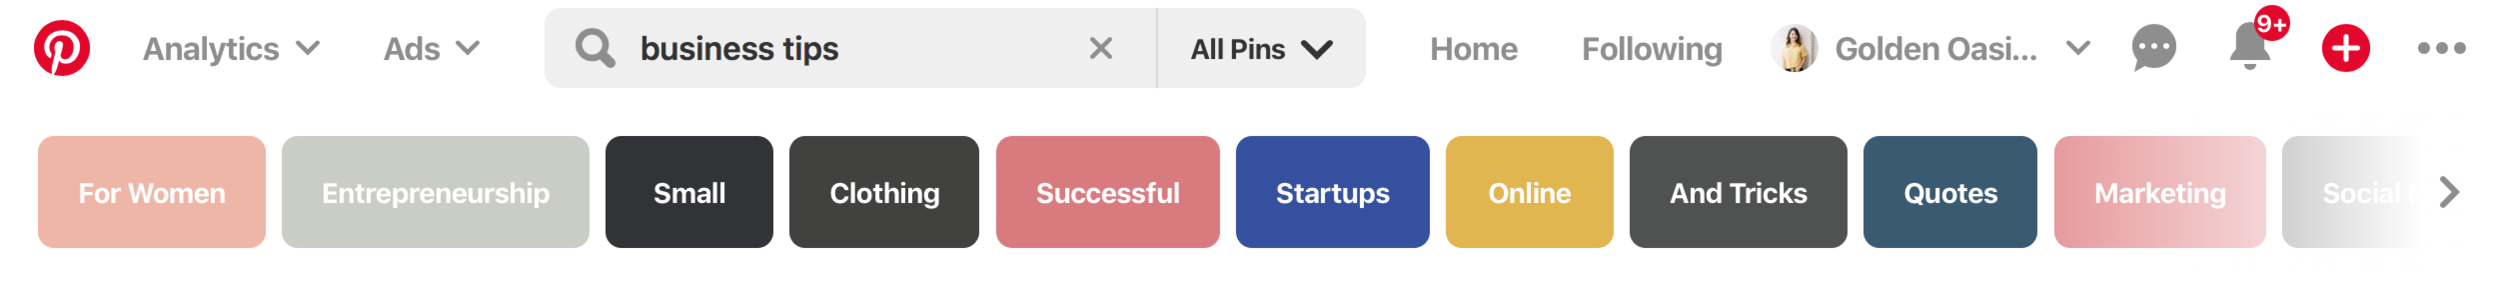 how-to-find-best-keywords-for-pinterest-2.png